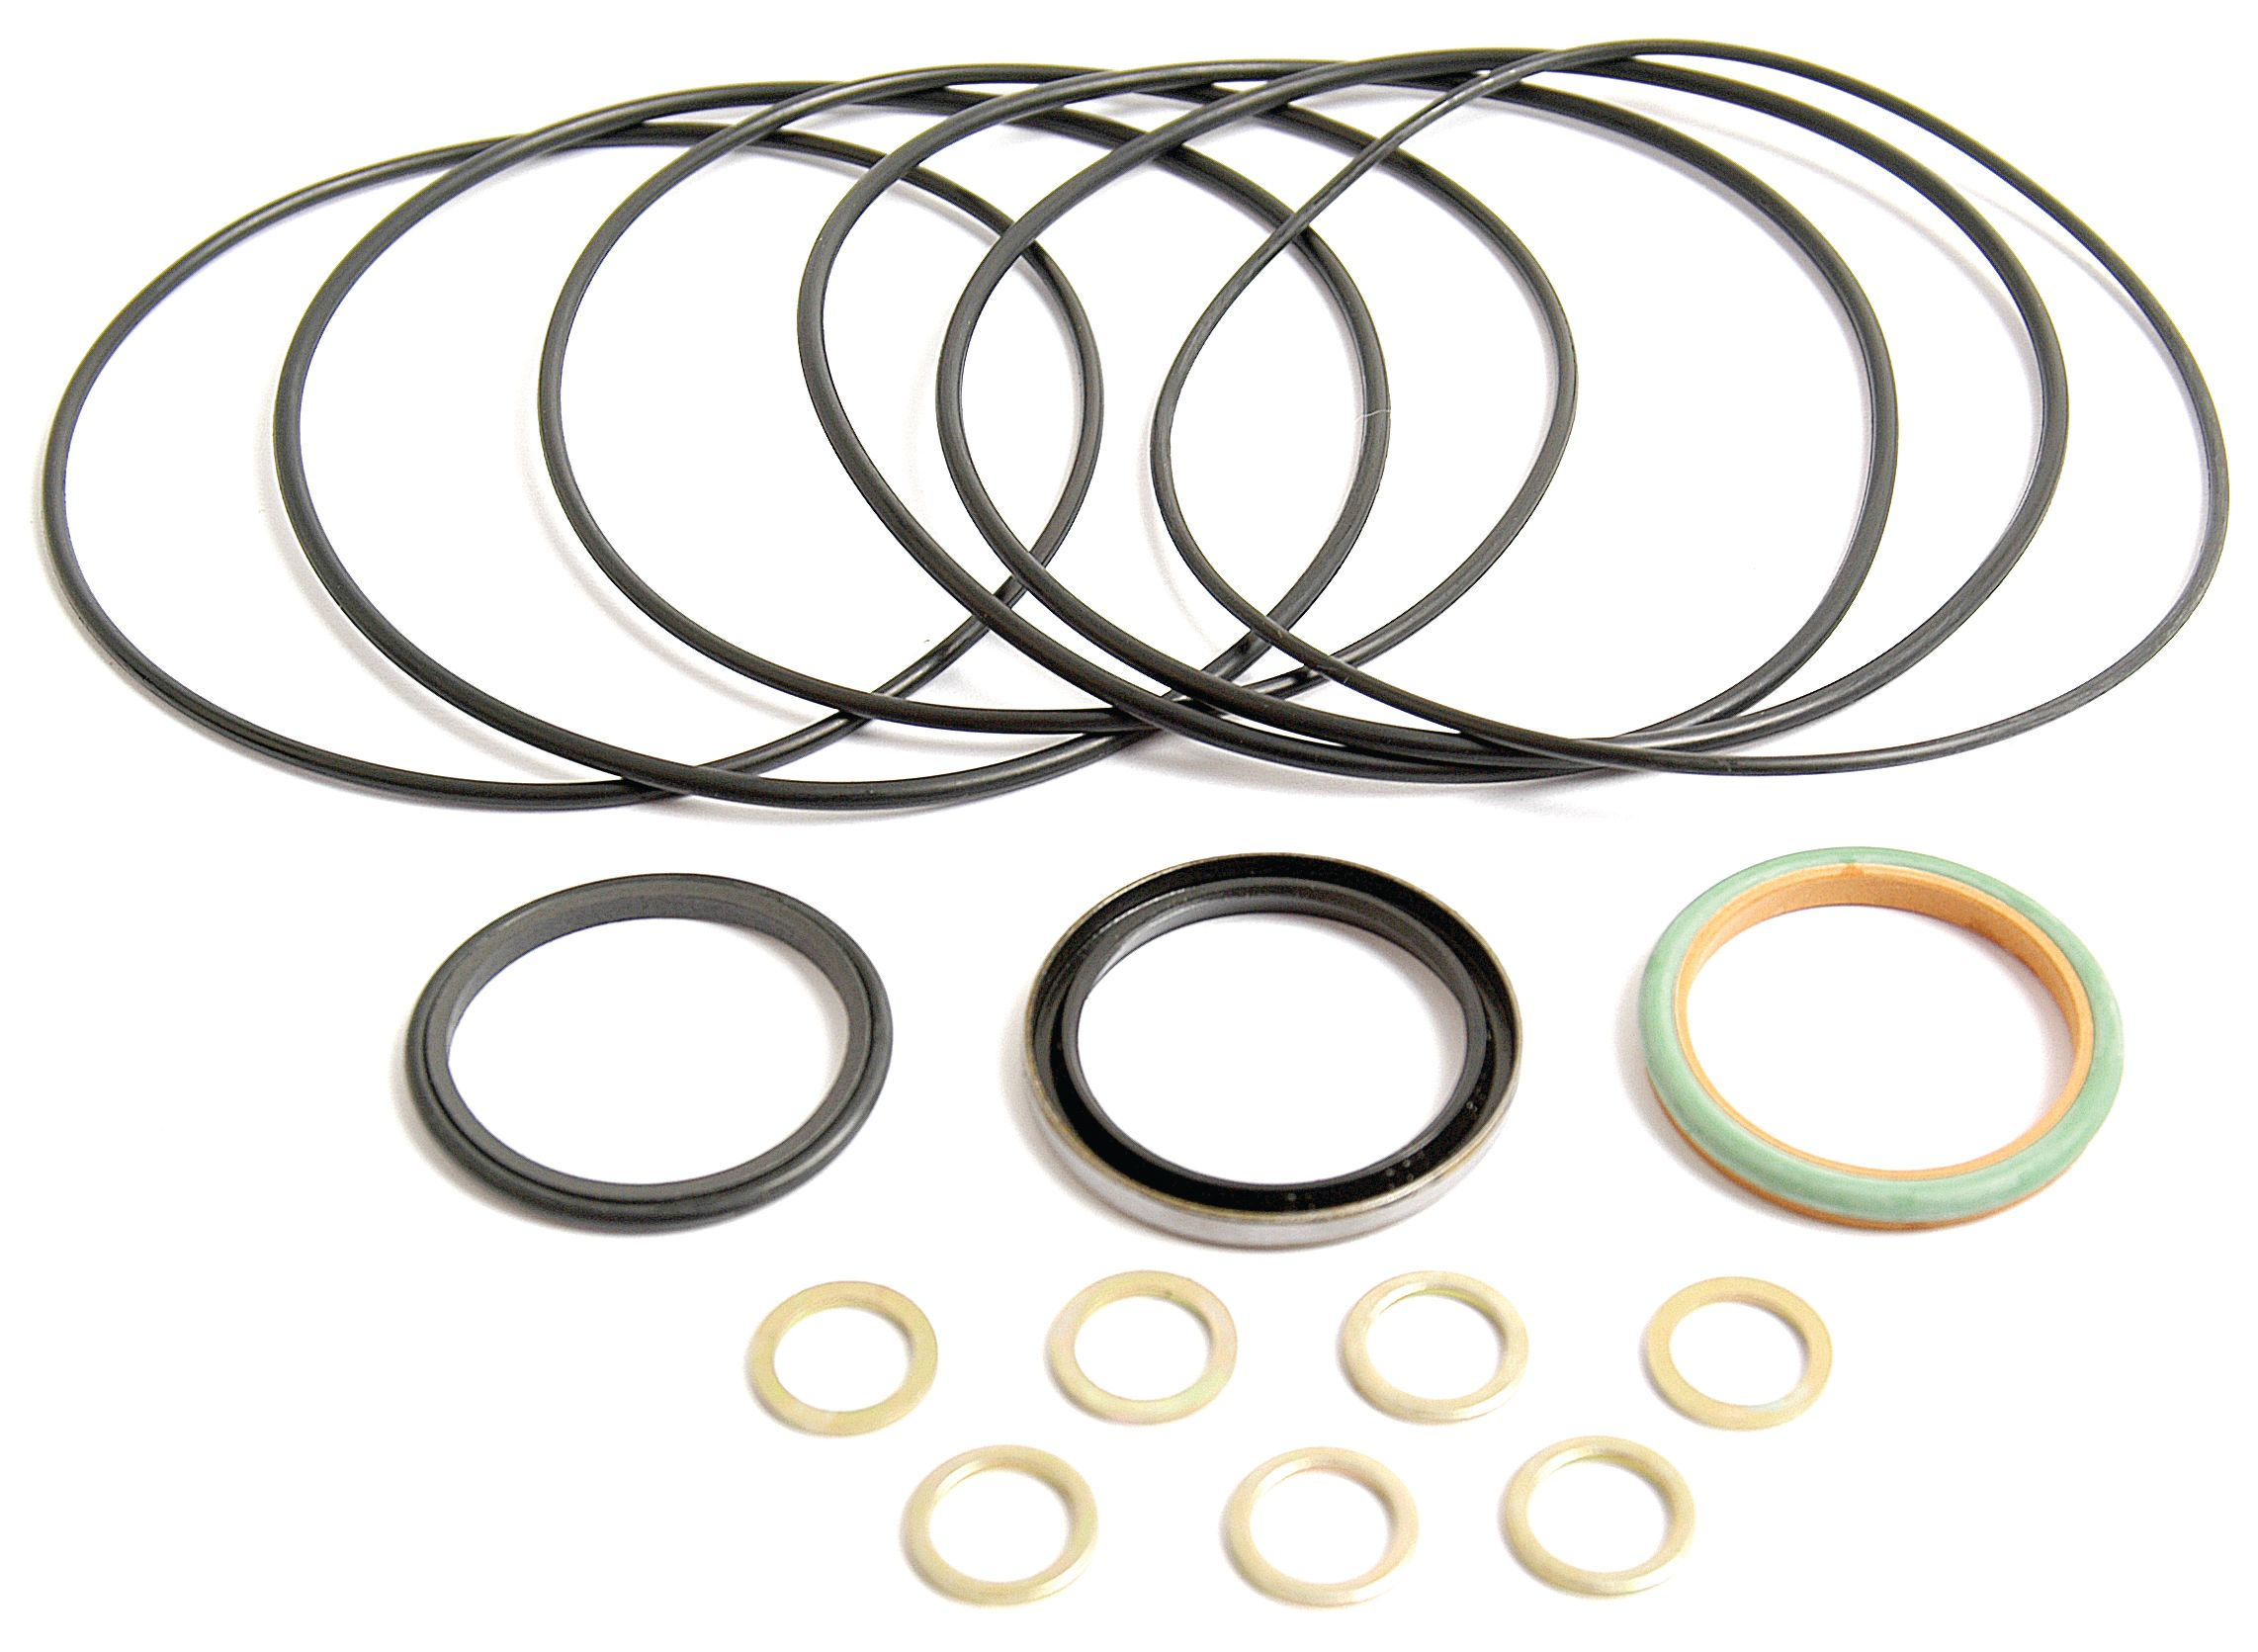 CASE SEAL KIT-ORBITROL UNIT 57264